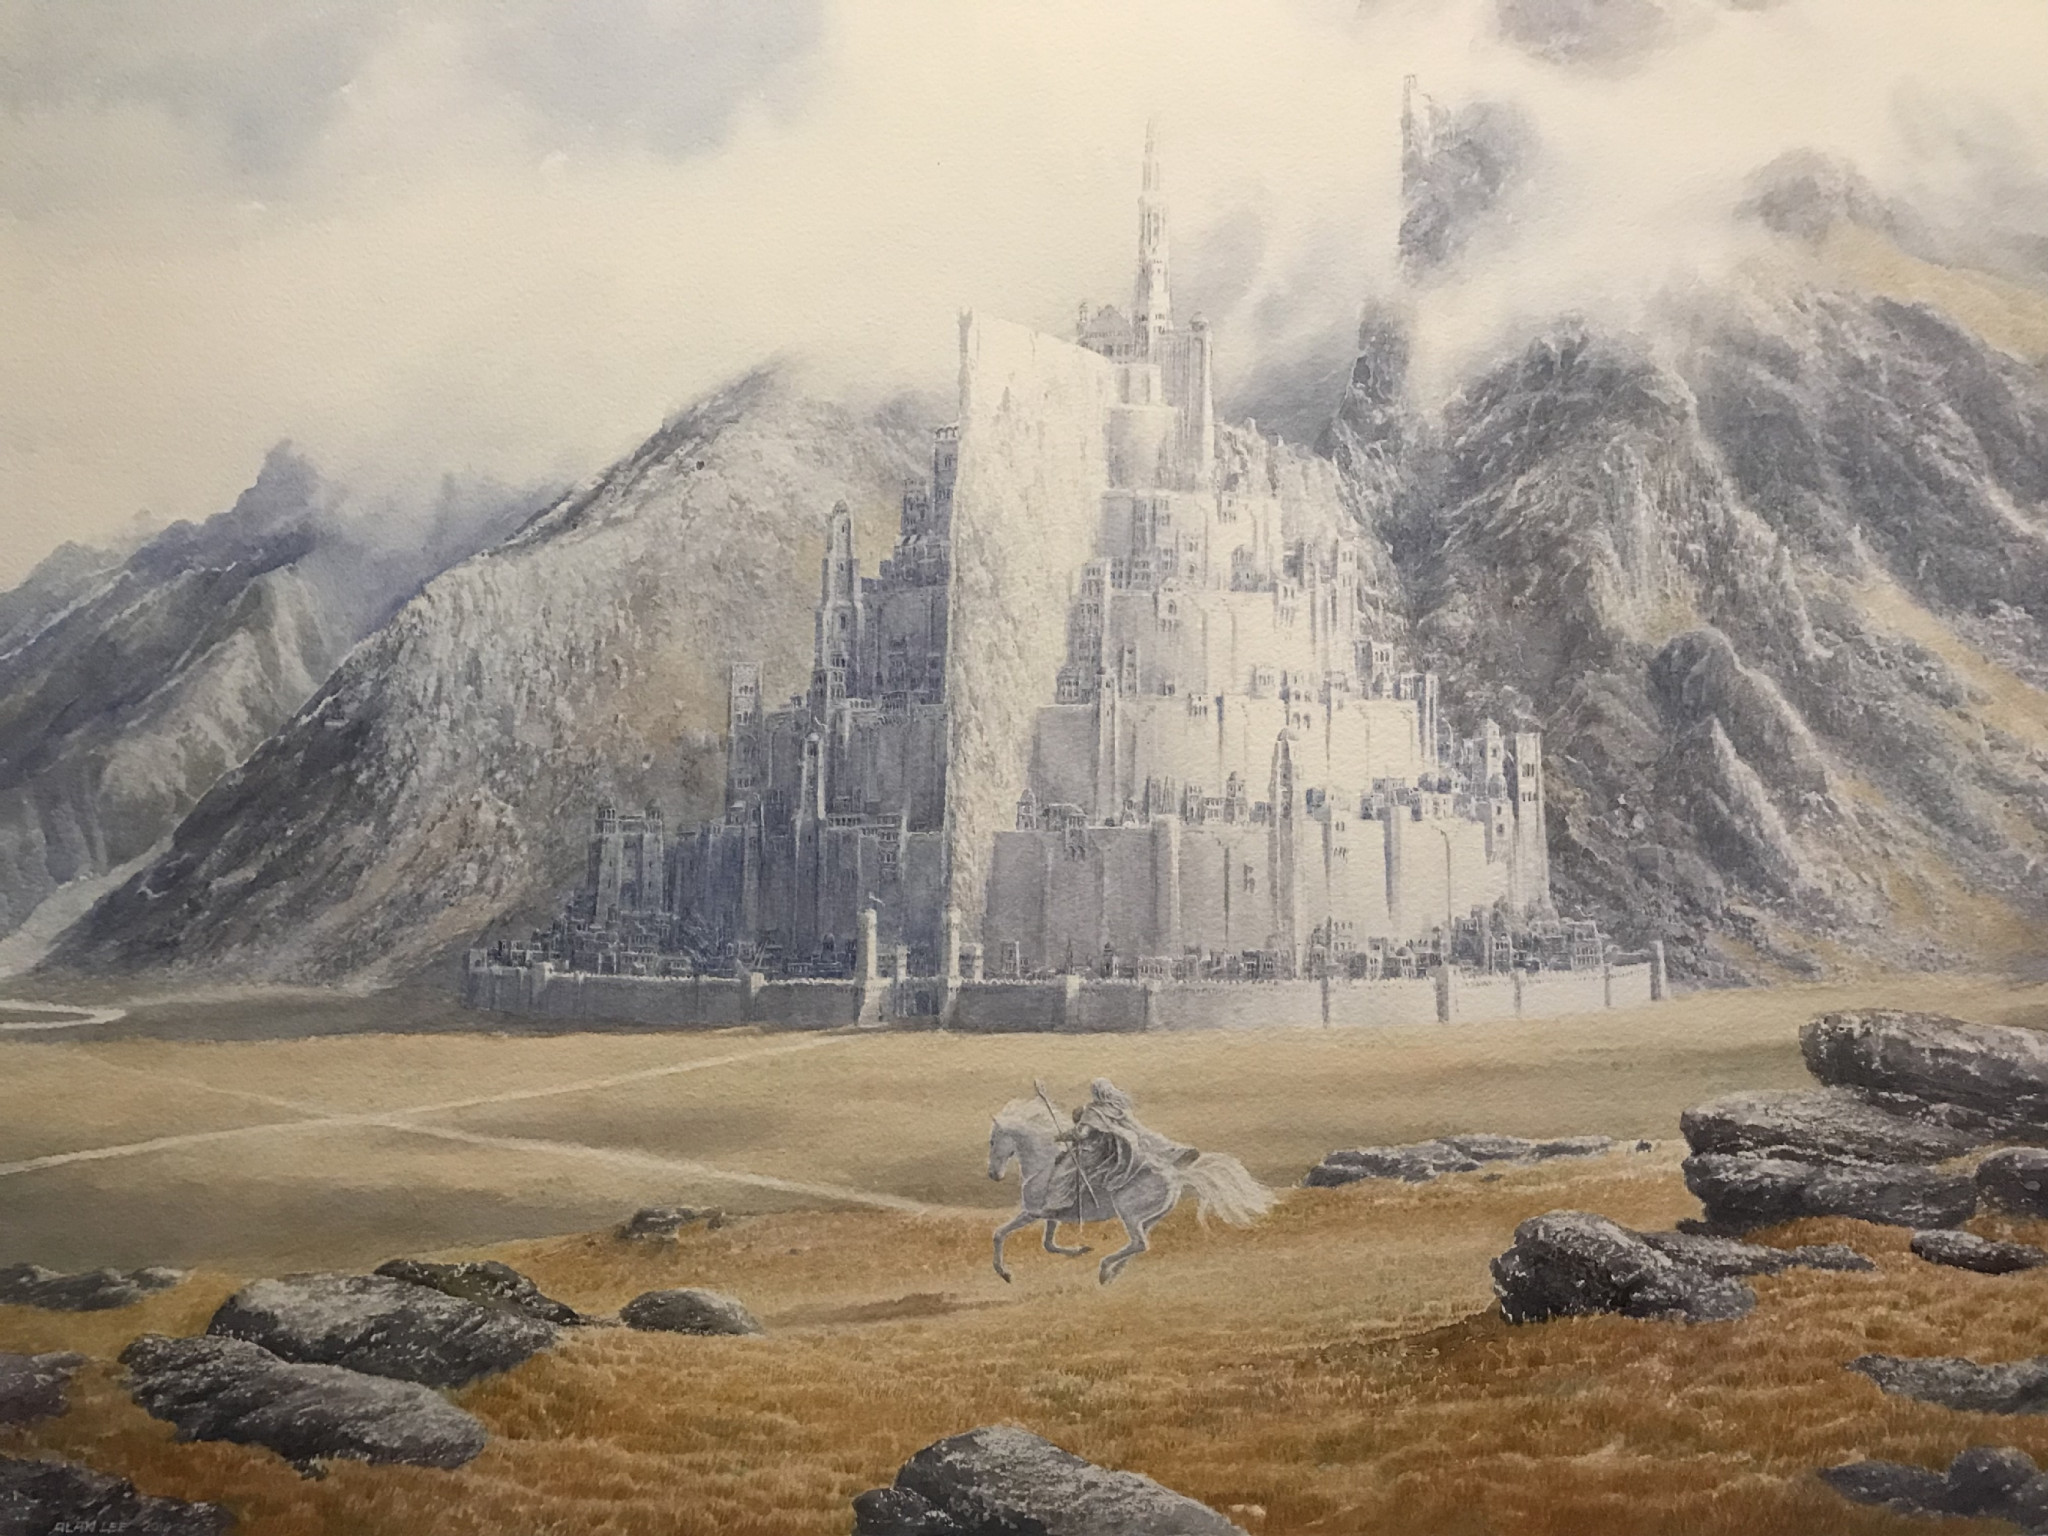 Painting from Alan Lee to put after that discussion